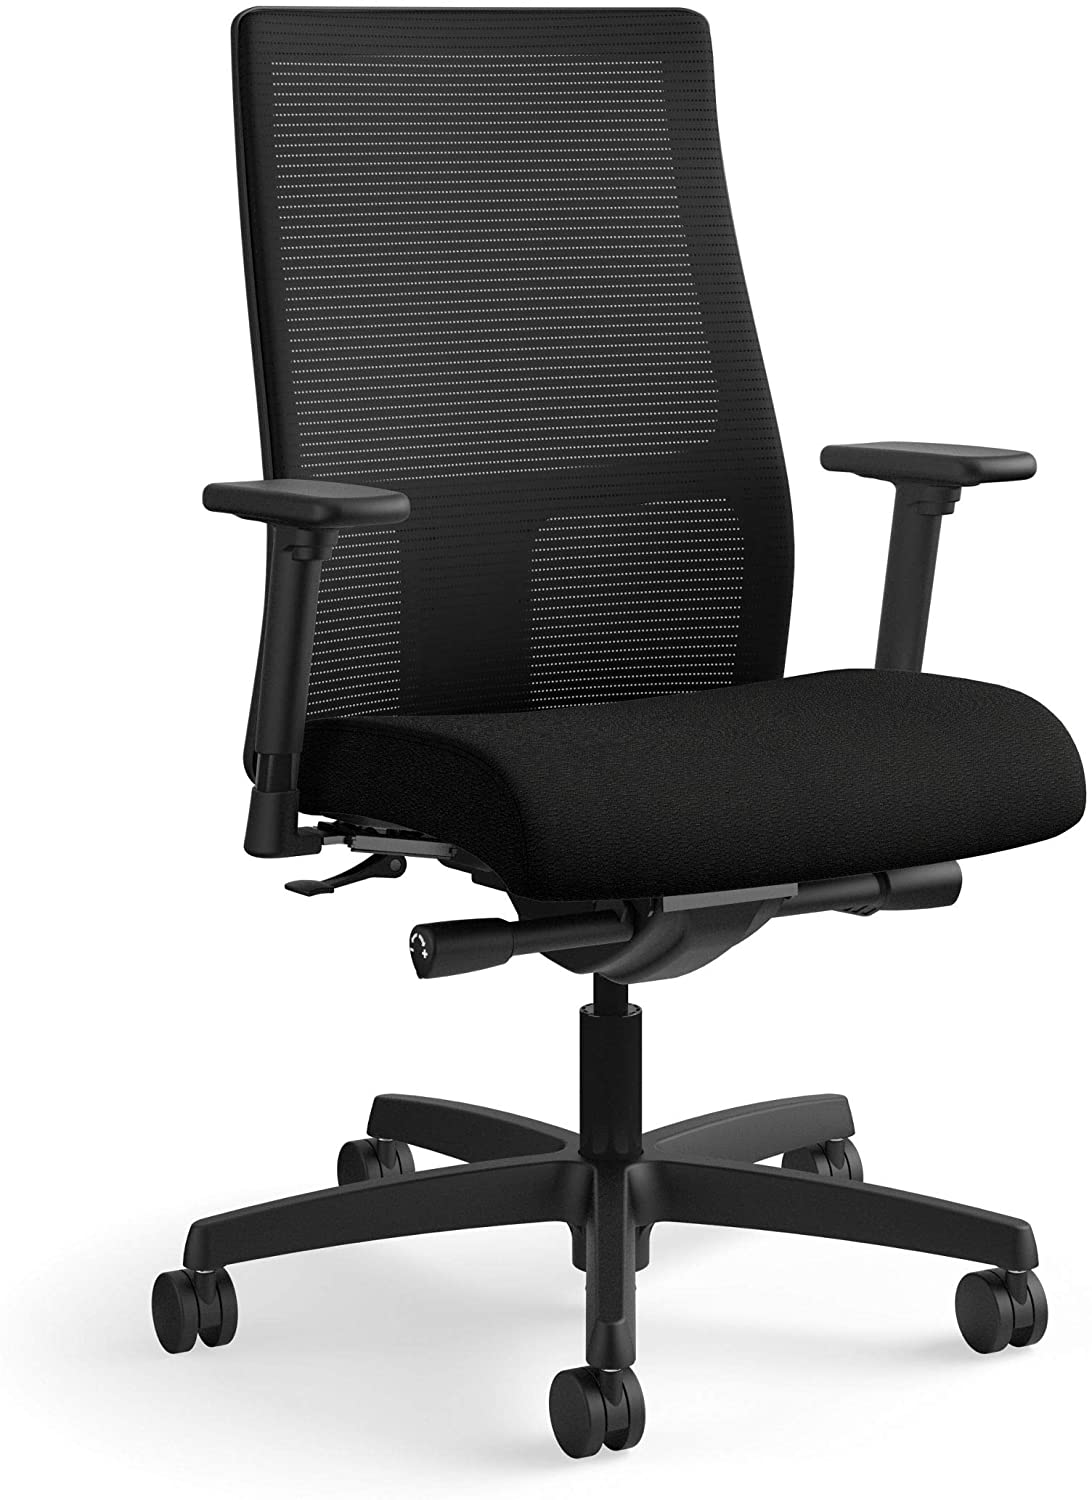 Gaming chair guide & reviews : Expert shares steps to buy a gaming chair 2